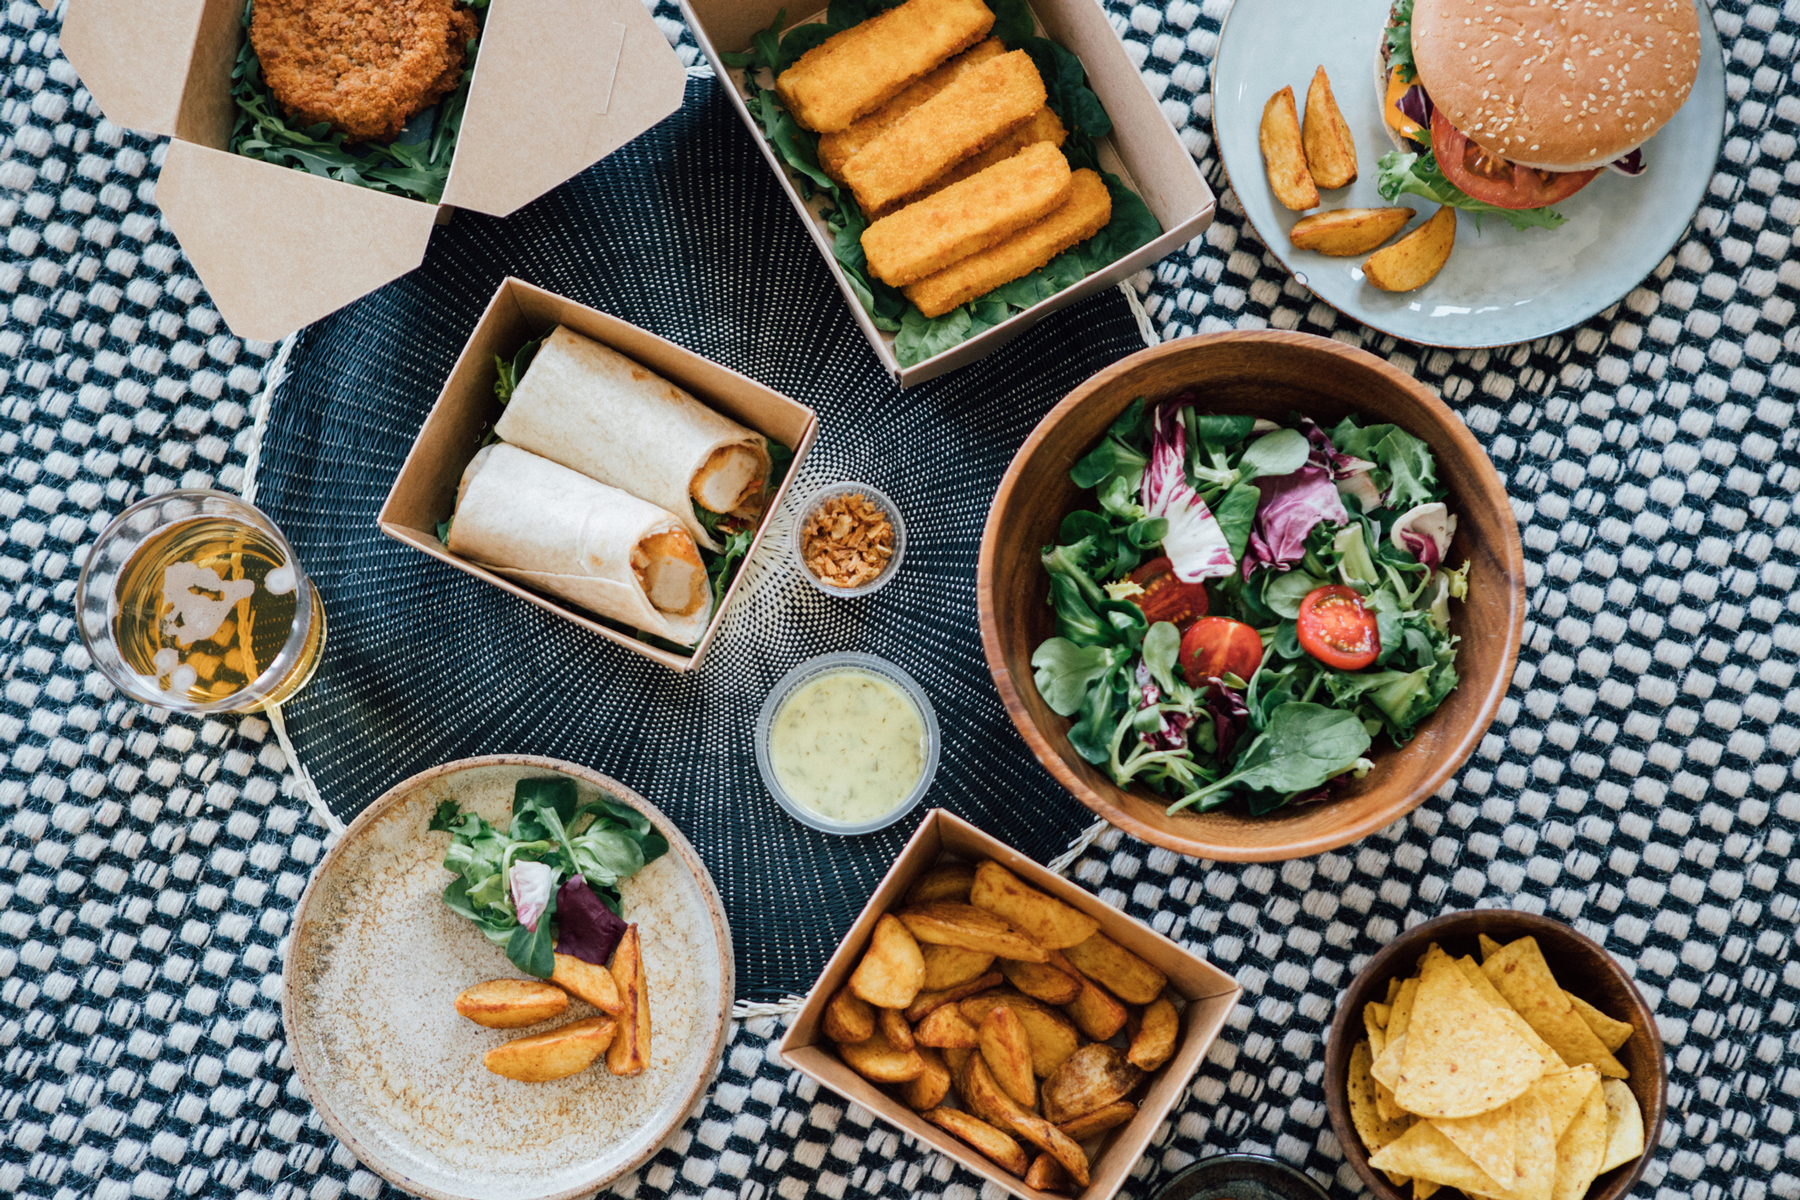 Flat lay view of delicious takeaway fast food meal - with burger, wrap sandwich, fish cake, fish sticks, potato wedges and vegetable salad.